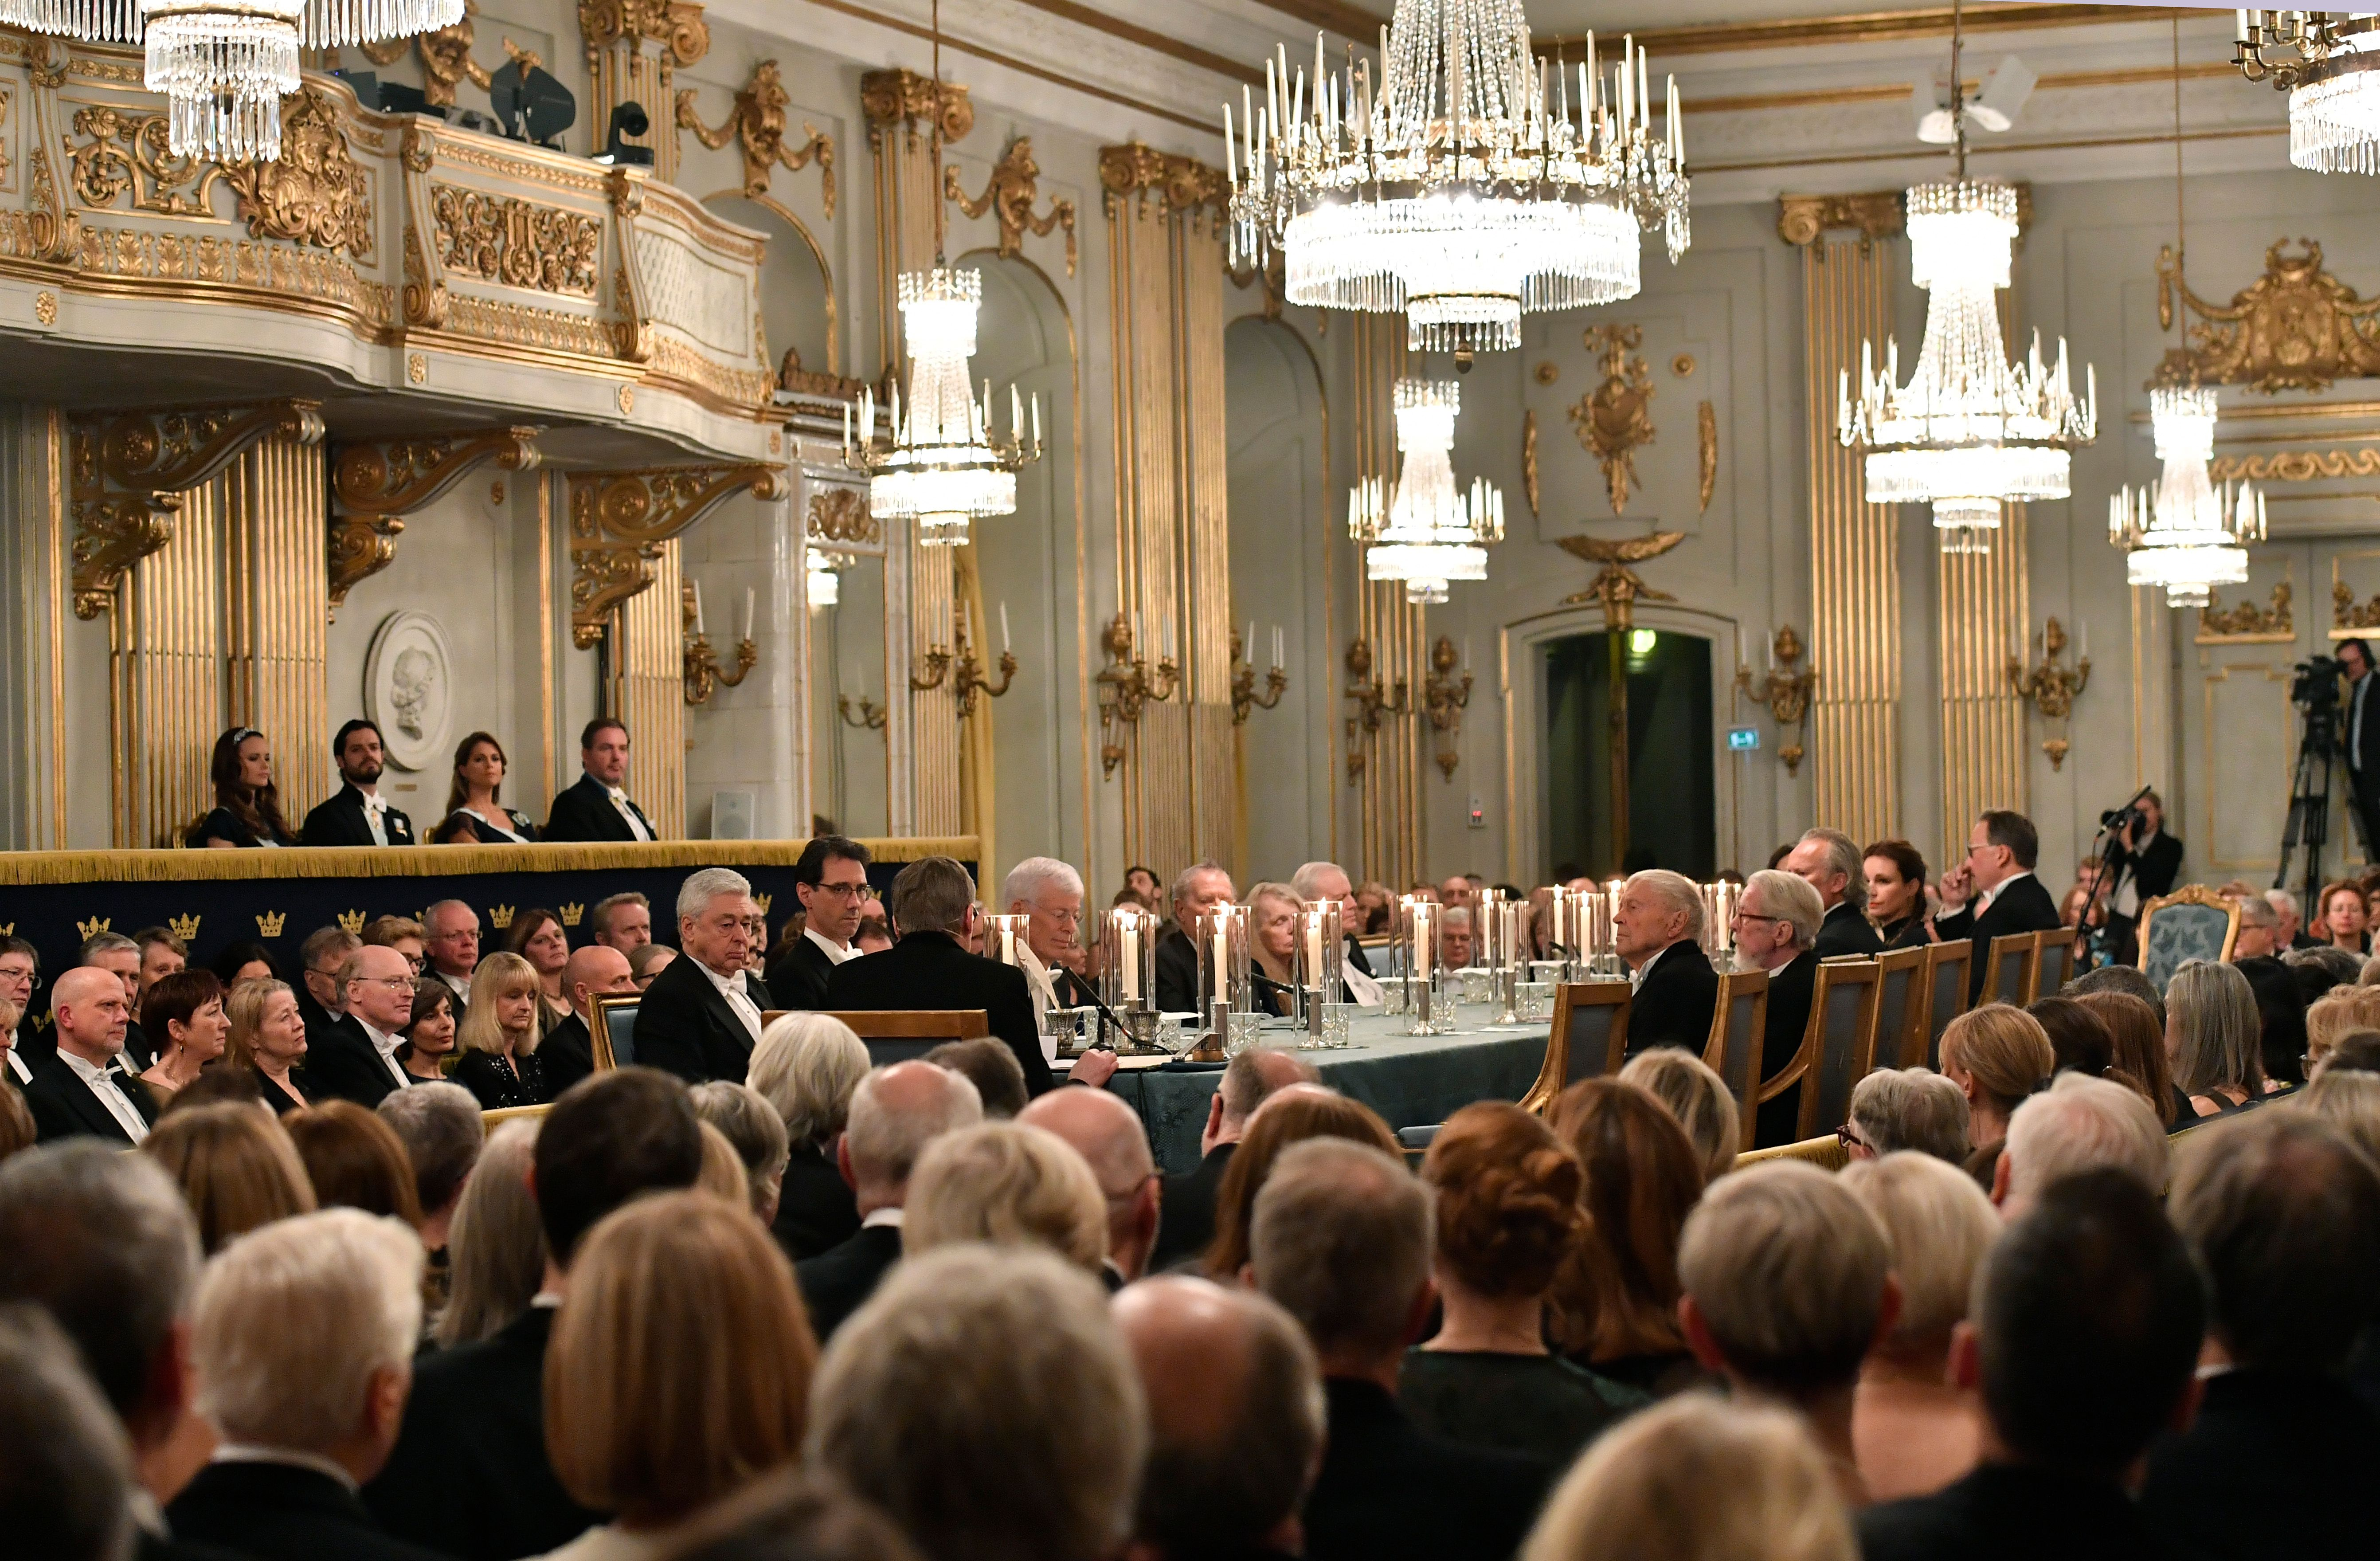 Guests attend Swedish Academy's annual meeting in December where they sit at long, lavish table.